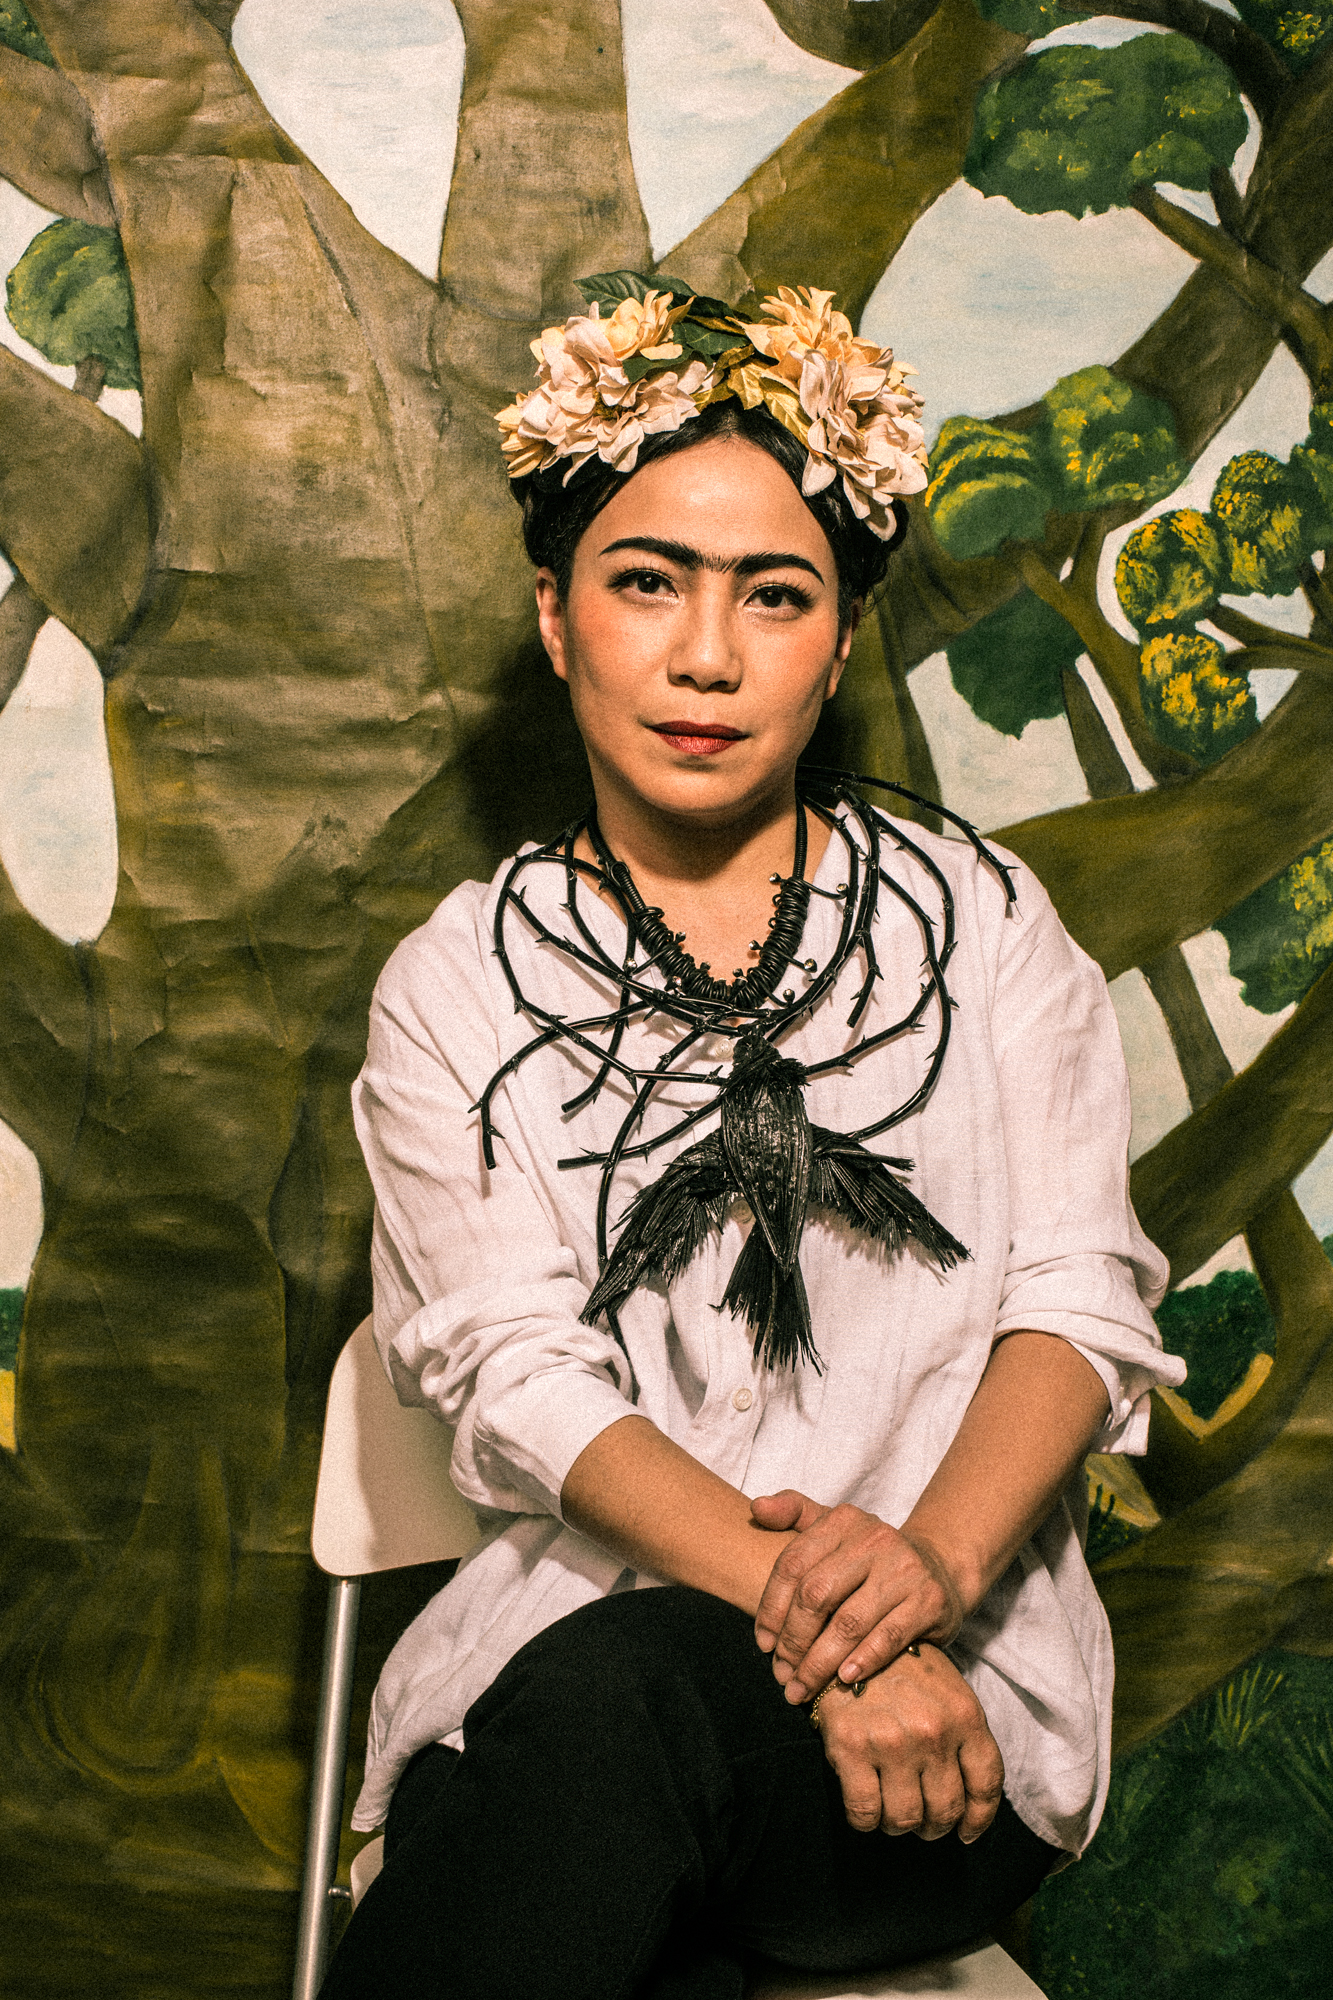 Bobo Fung in publicity material for 'The 9 Fridas', wearing a necklace of a dead hummingbird from Kahlo's self-portrait 'A Necklace of Thorns'